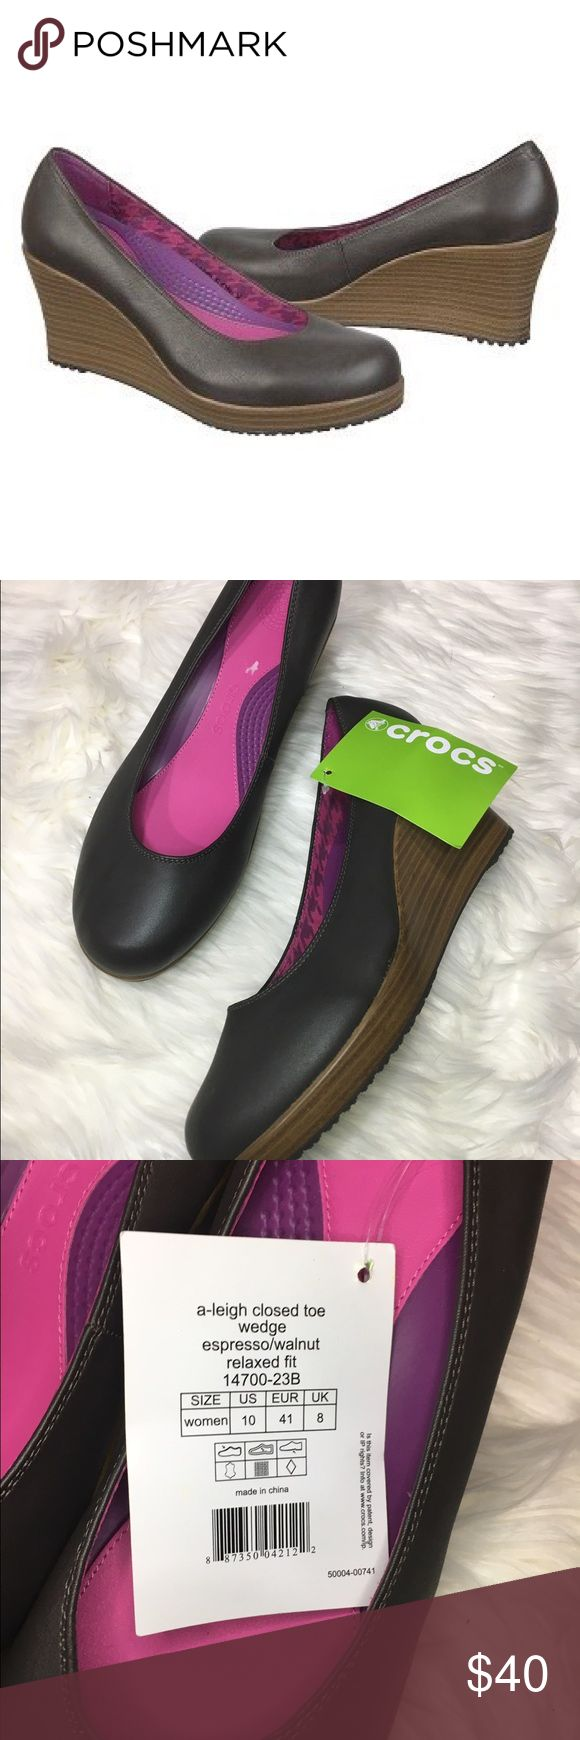 Crocs A Leigh Closed Toe Wedge Womens Court Shoes